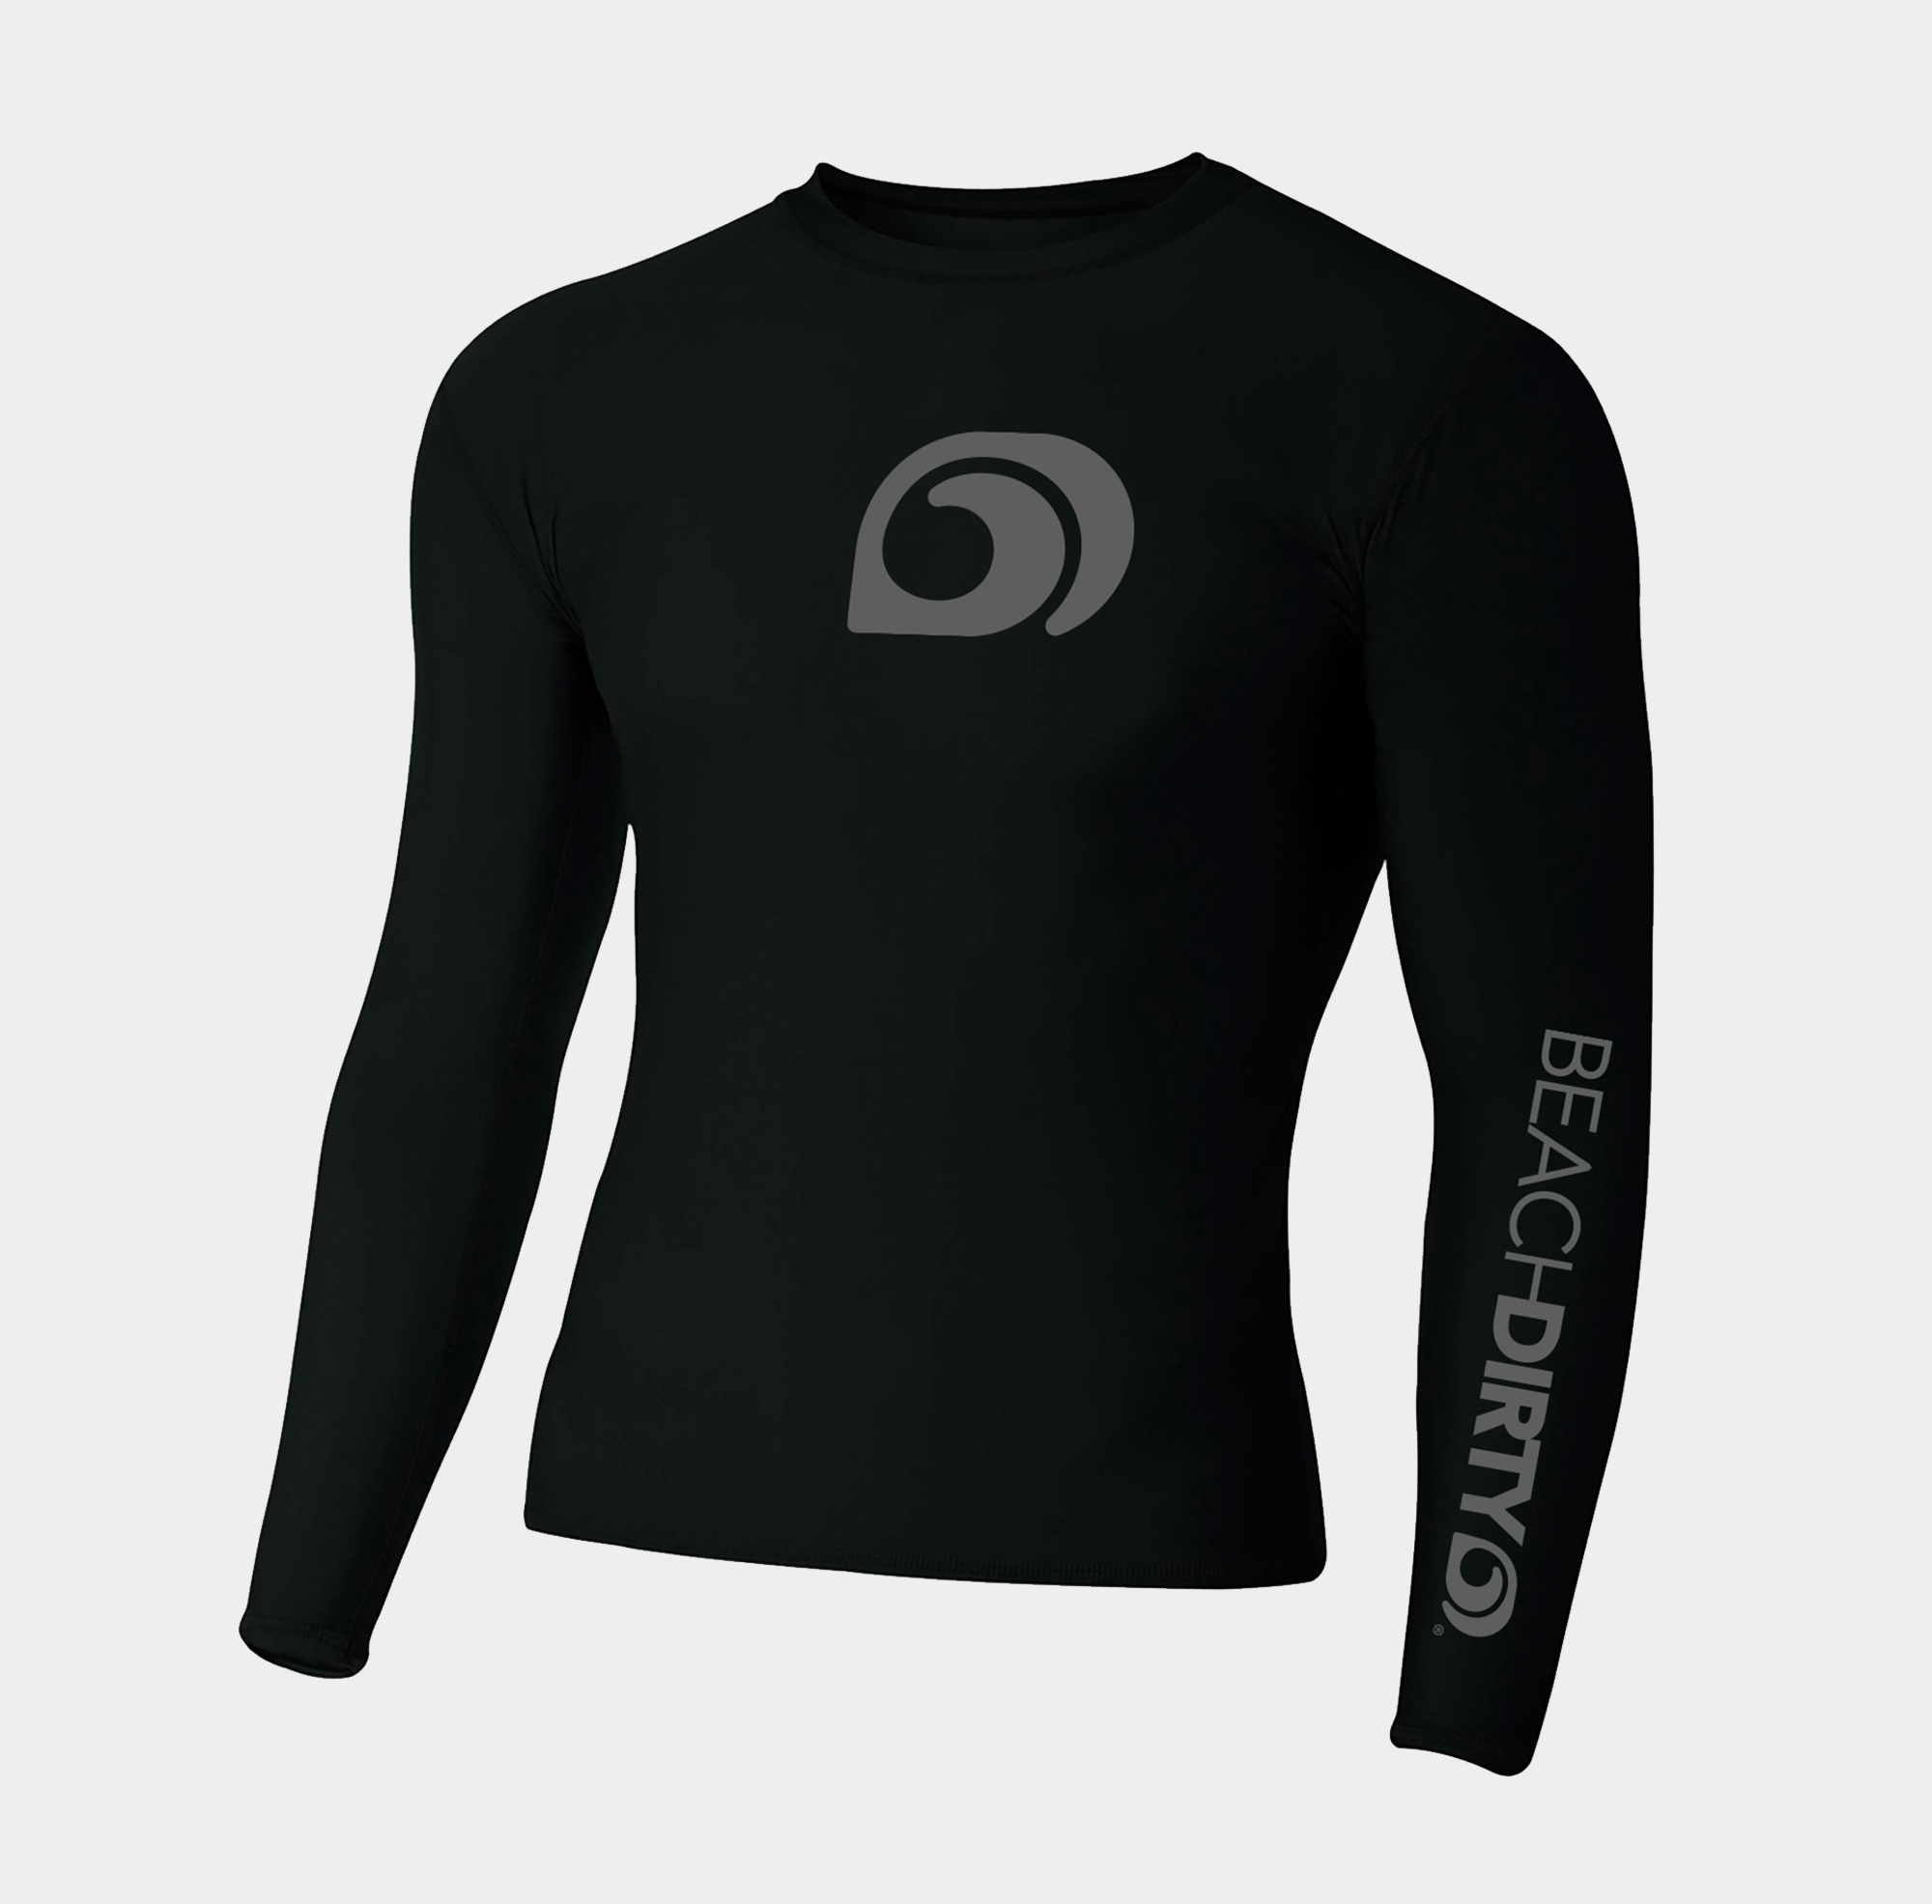 rashguard blk_gray for web.jpg